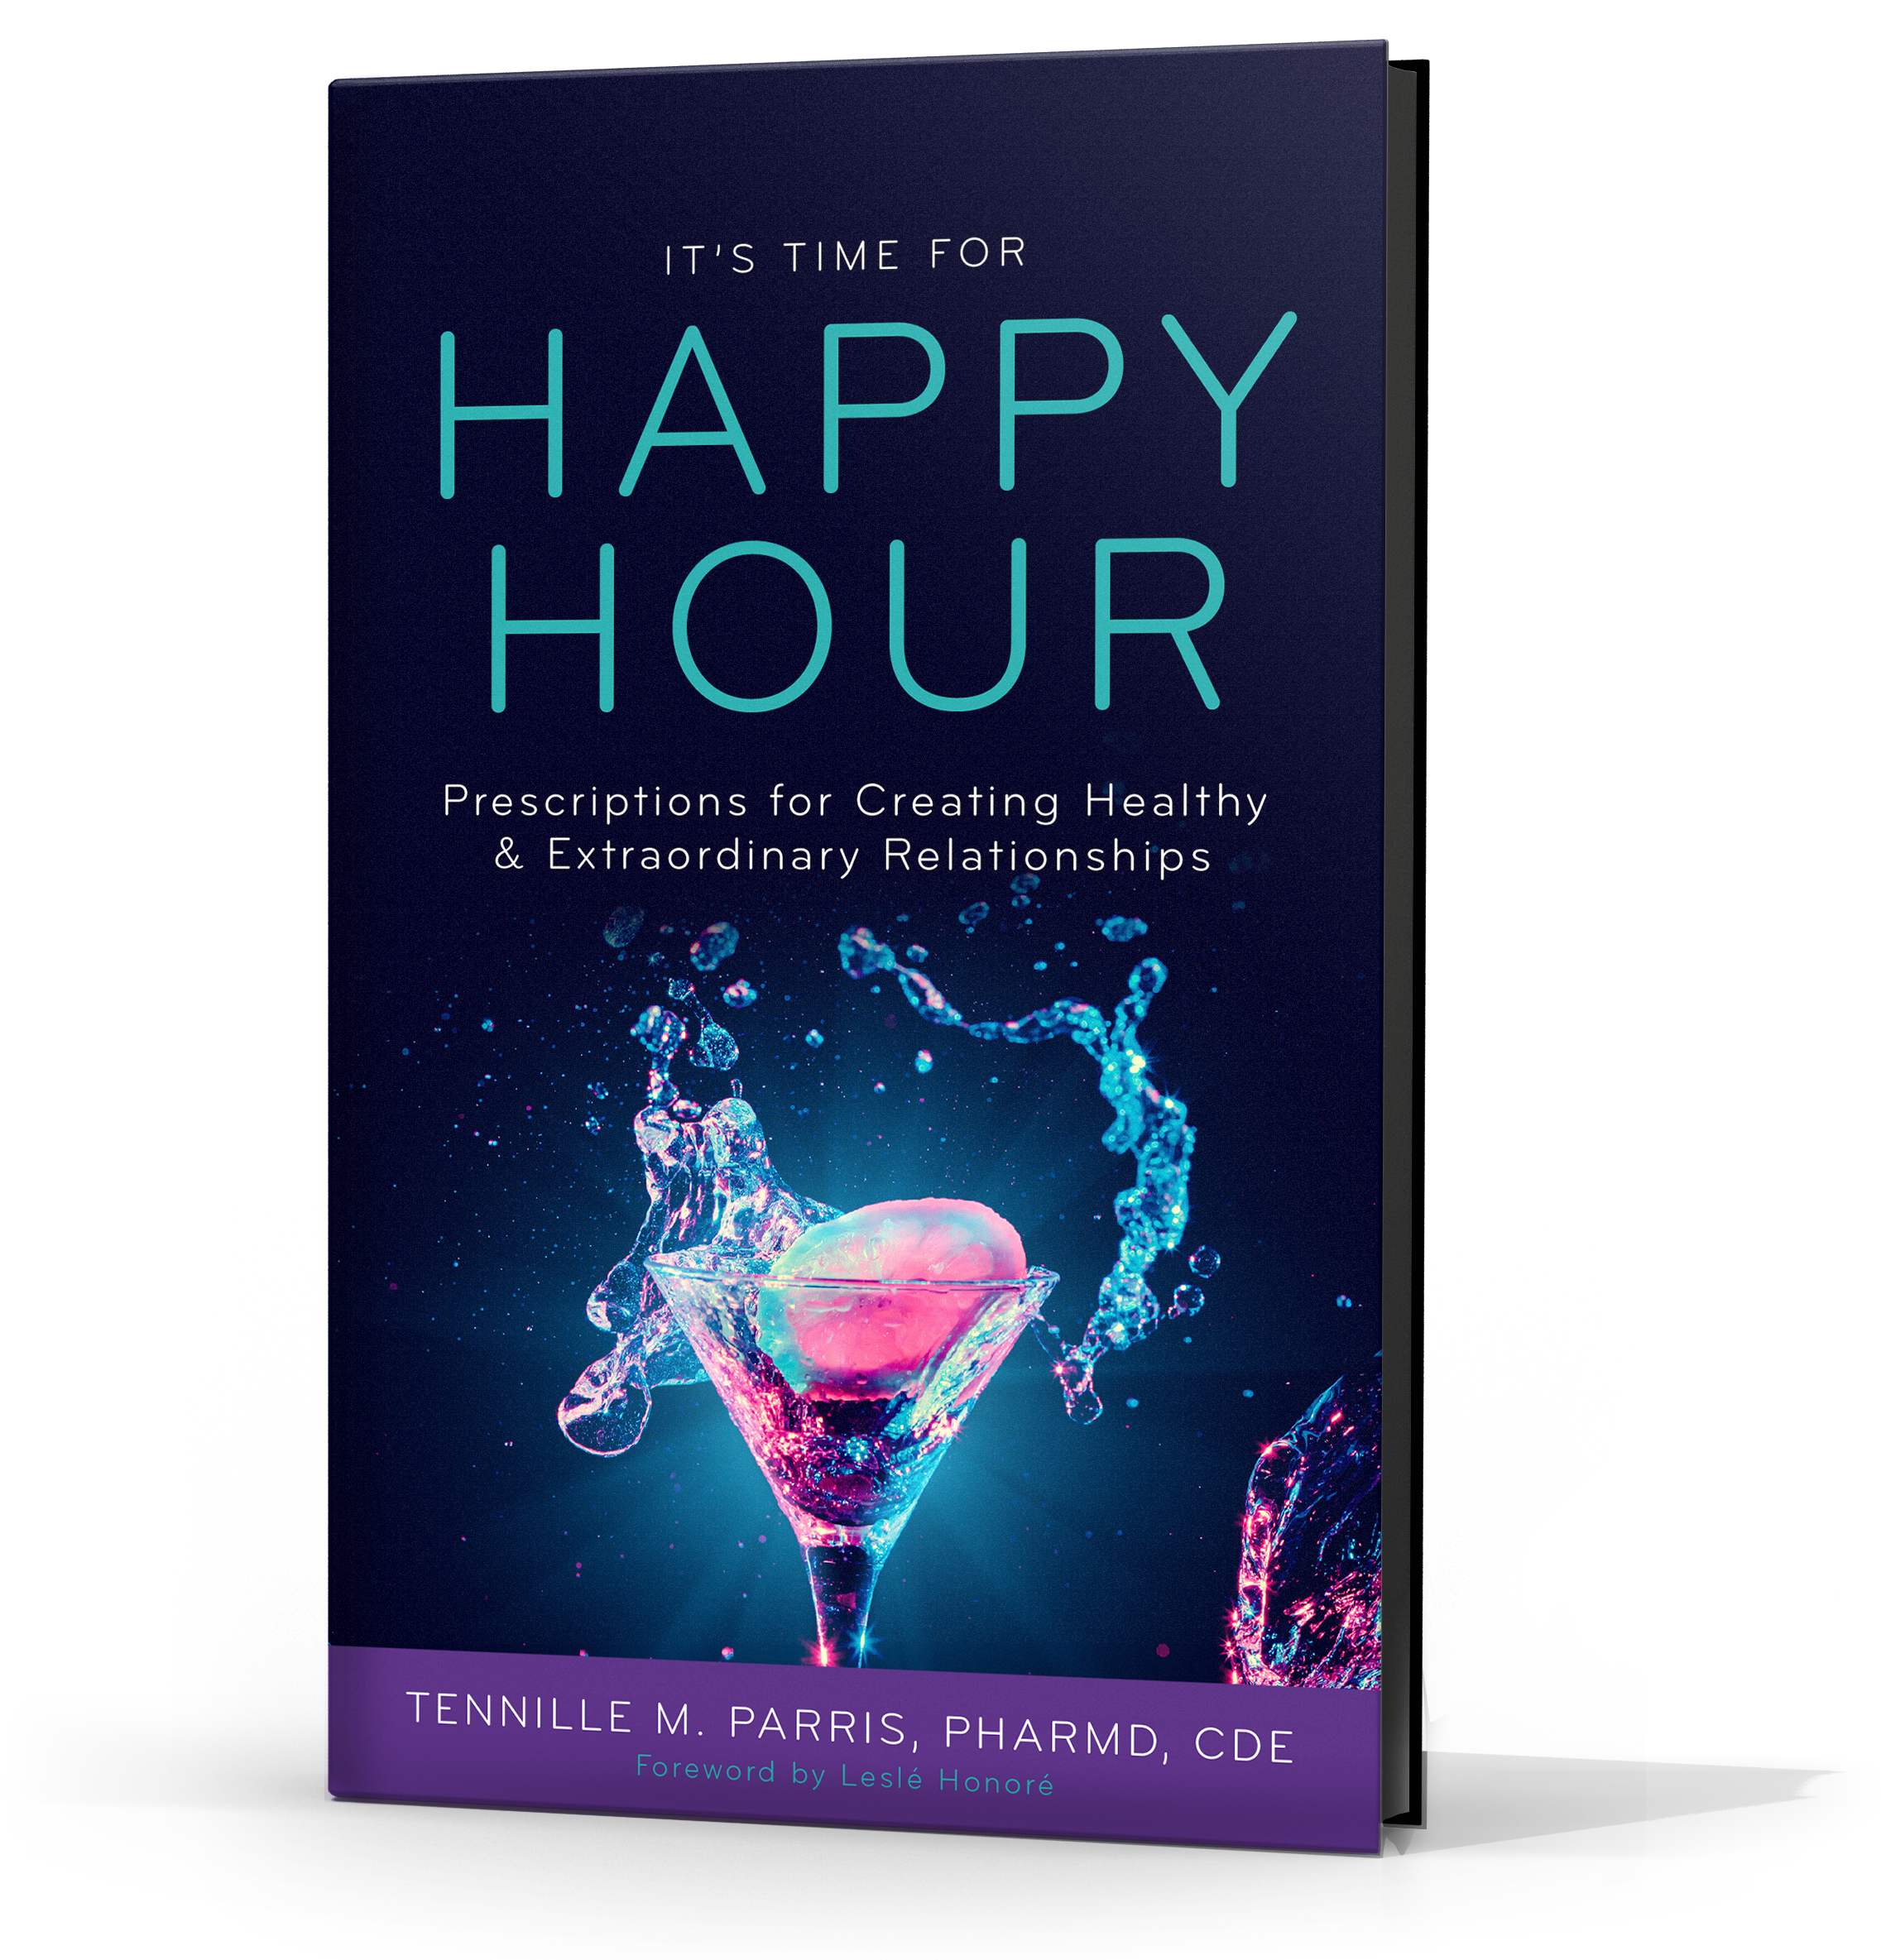 Medical Mixlogist and Bestselling Author Releases Book Lauding the Benefits of Happy Hour